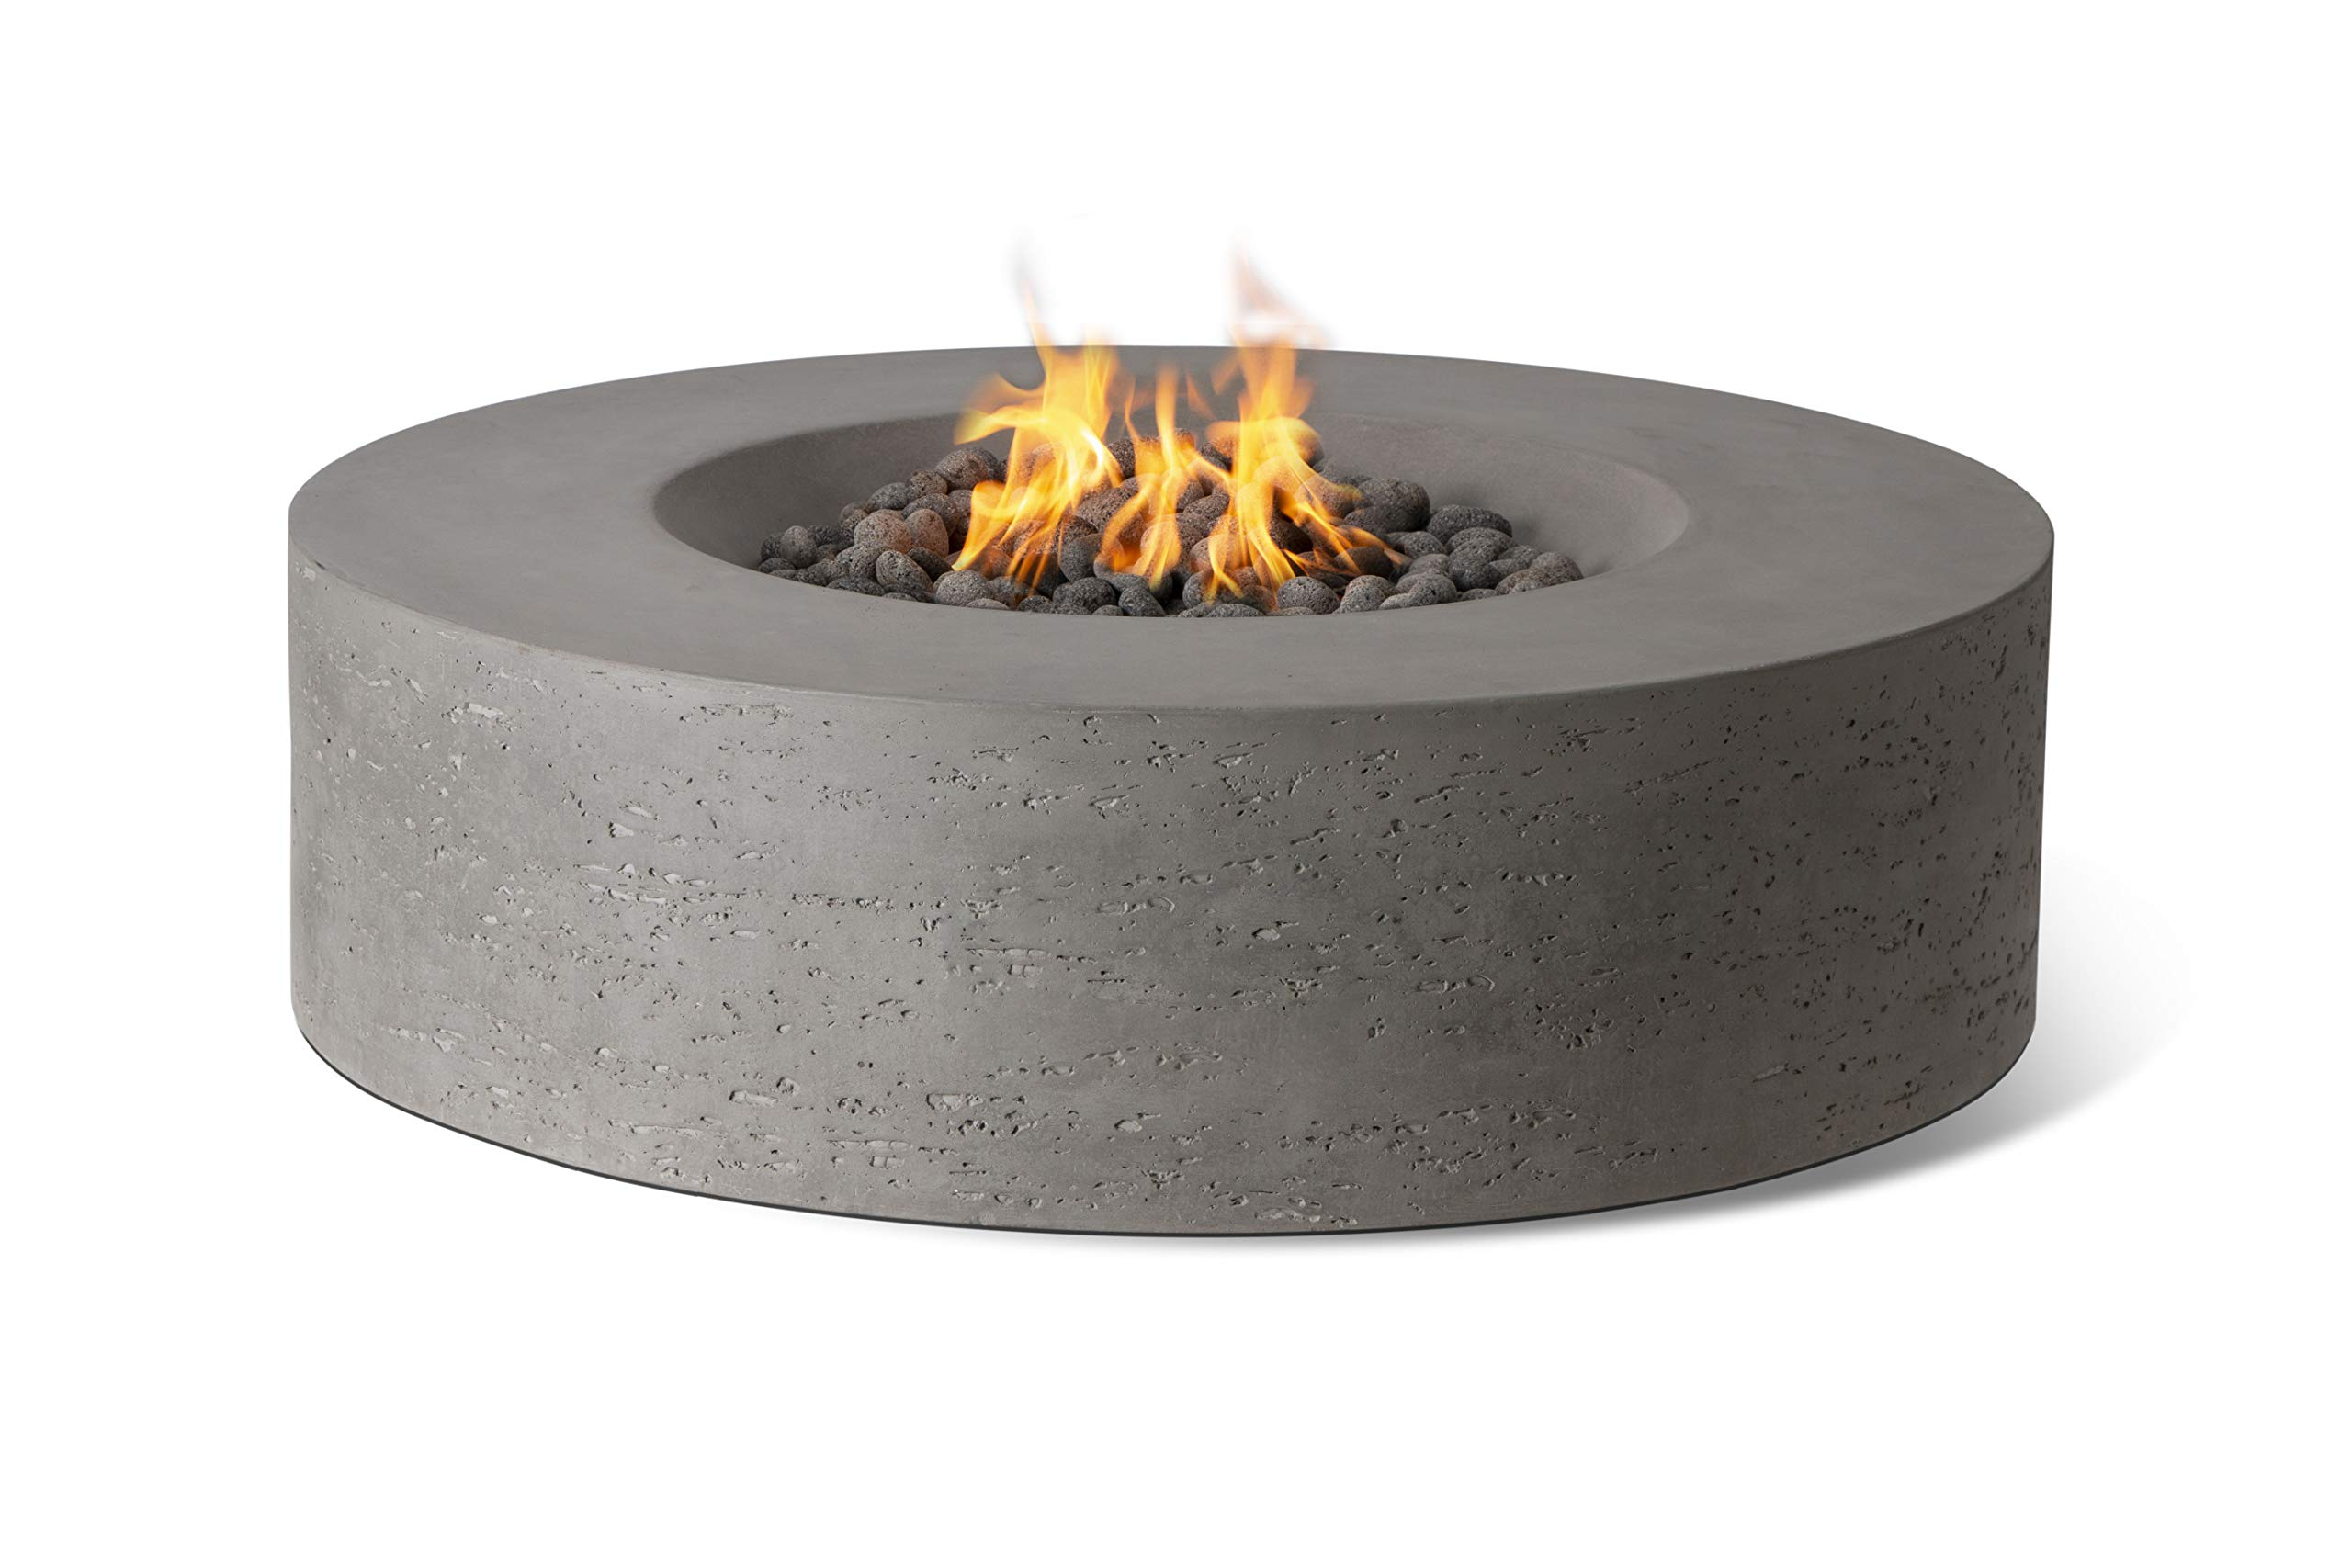 Pyromania Genesis Outdoor Fire Table, Fire Pit Table. Hand Crafted from High Performance Concrete. 60,000 BTU Stainless Steel Burner with Electronic Ignition - Natural Gas, Slate Color by Pyromania